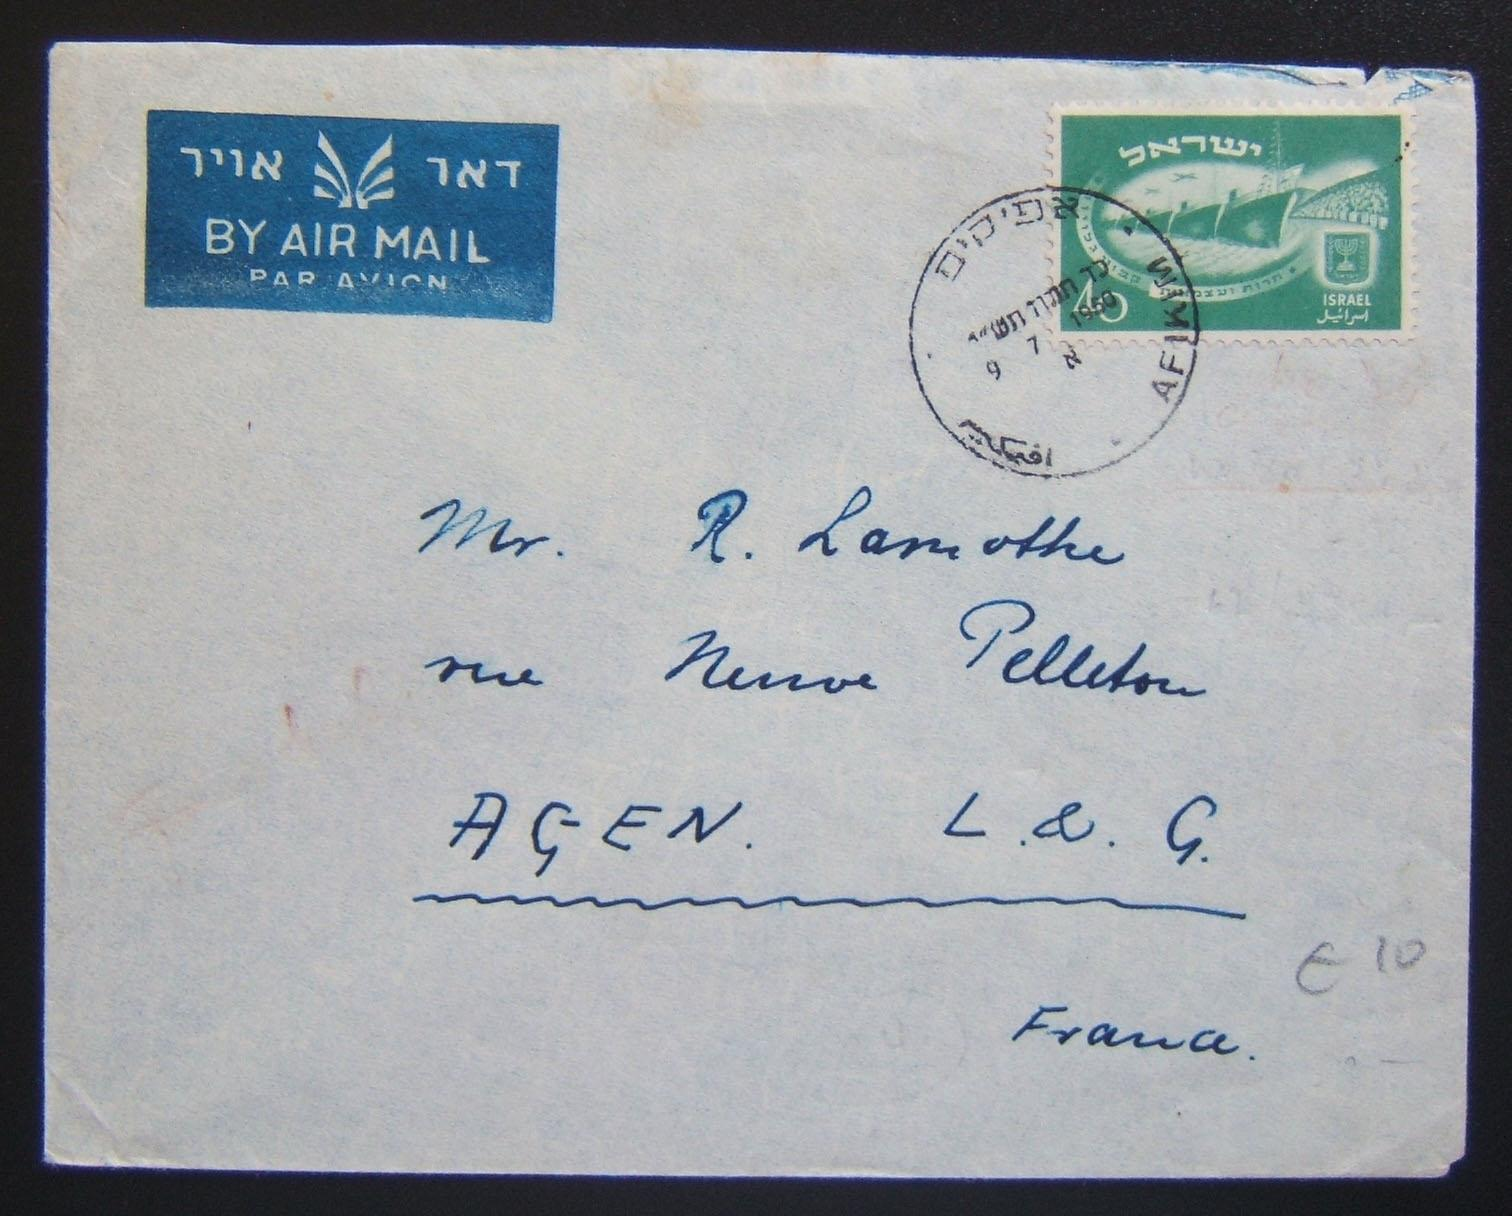 1950 Independence airmail: 9-7-1950 comm a/m cv ex AFIKIM to FRANCE franked 40pr per FA-2a period rate to Europe, using single Ba30 tied by full strike of local pmk; peripheral tea